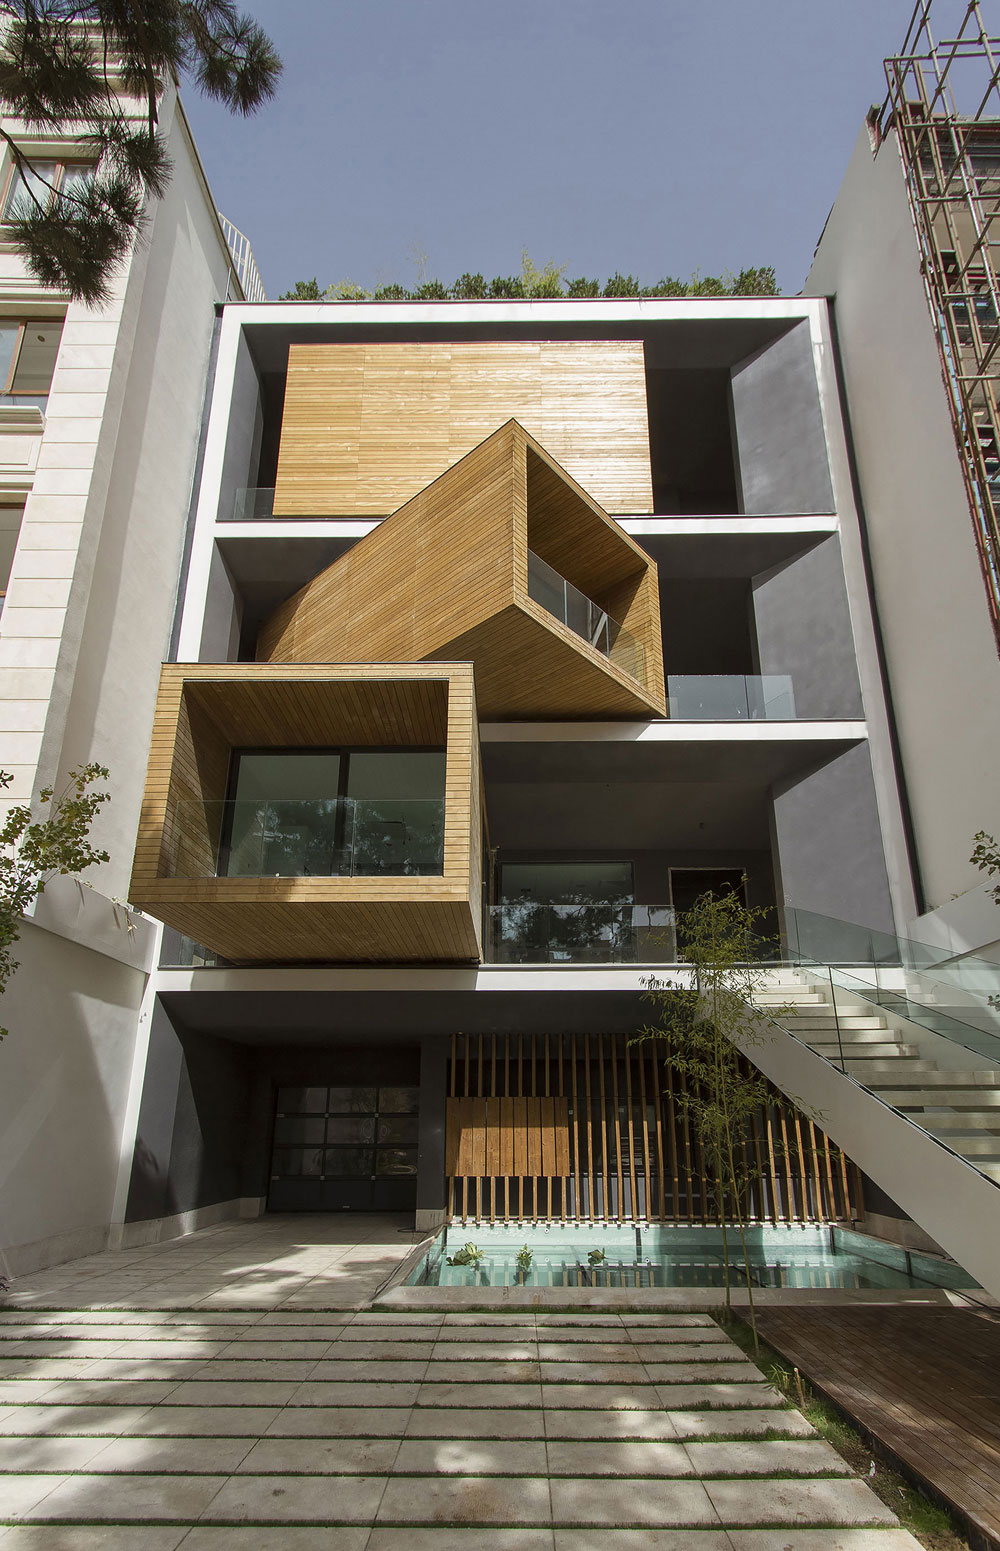 Sharifi-Ha House, Tehran, Iran, The Rooms Of This Amazing House Can Be Rotated By 90 Degrees-5